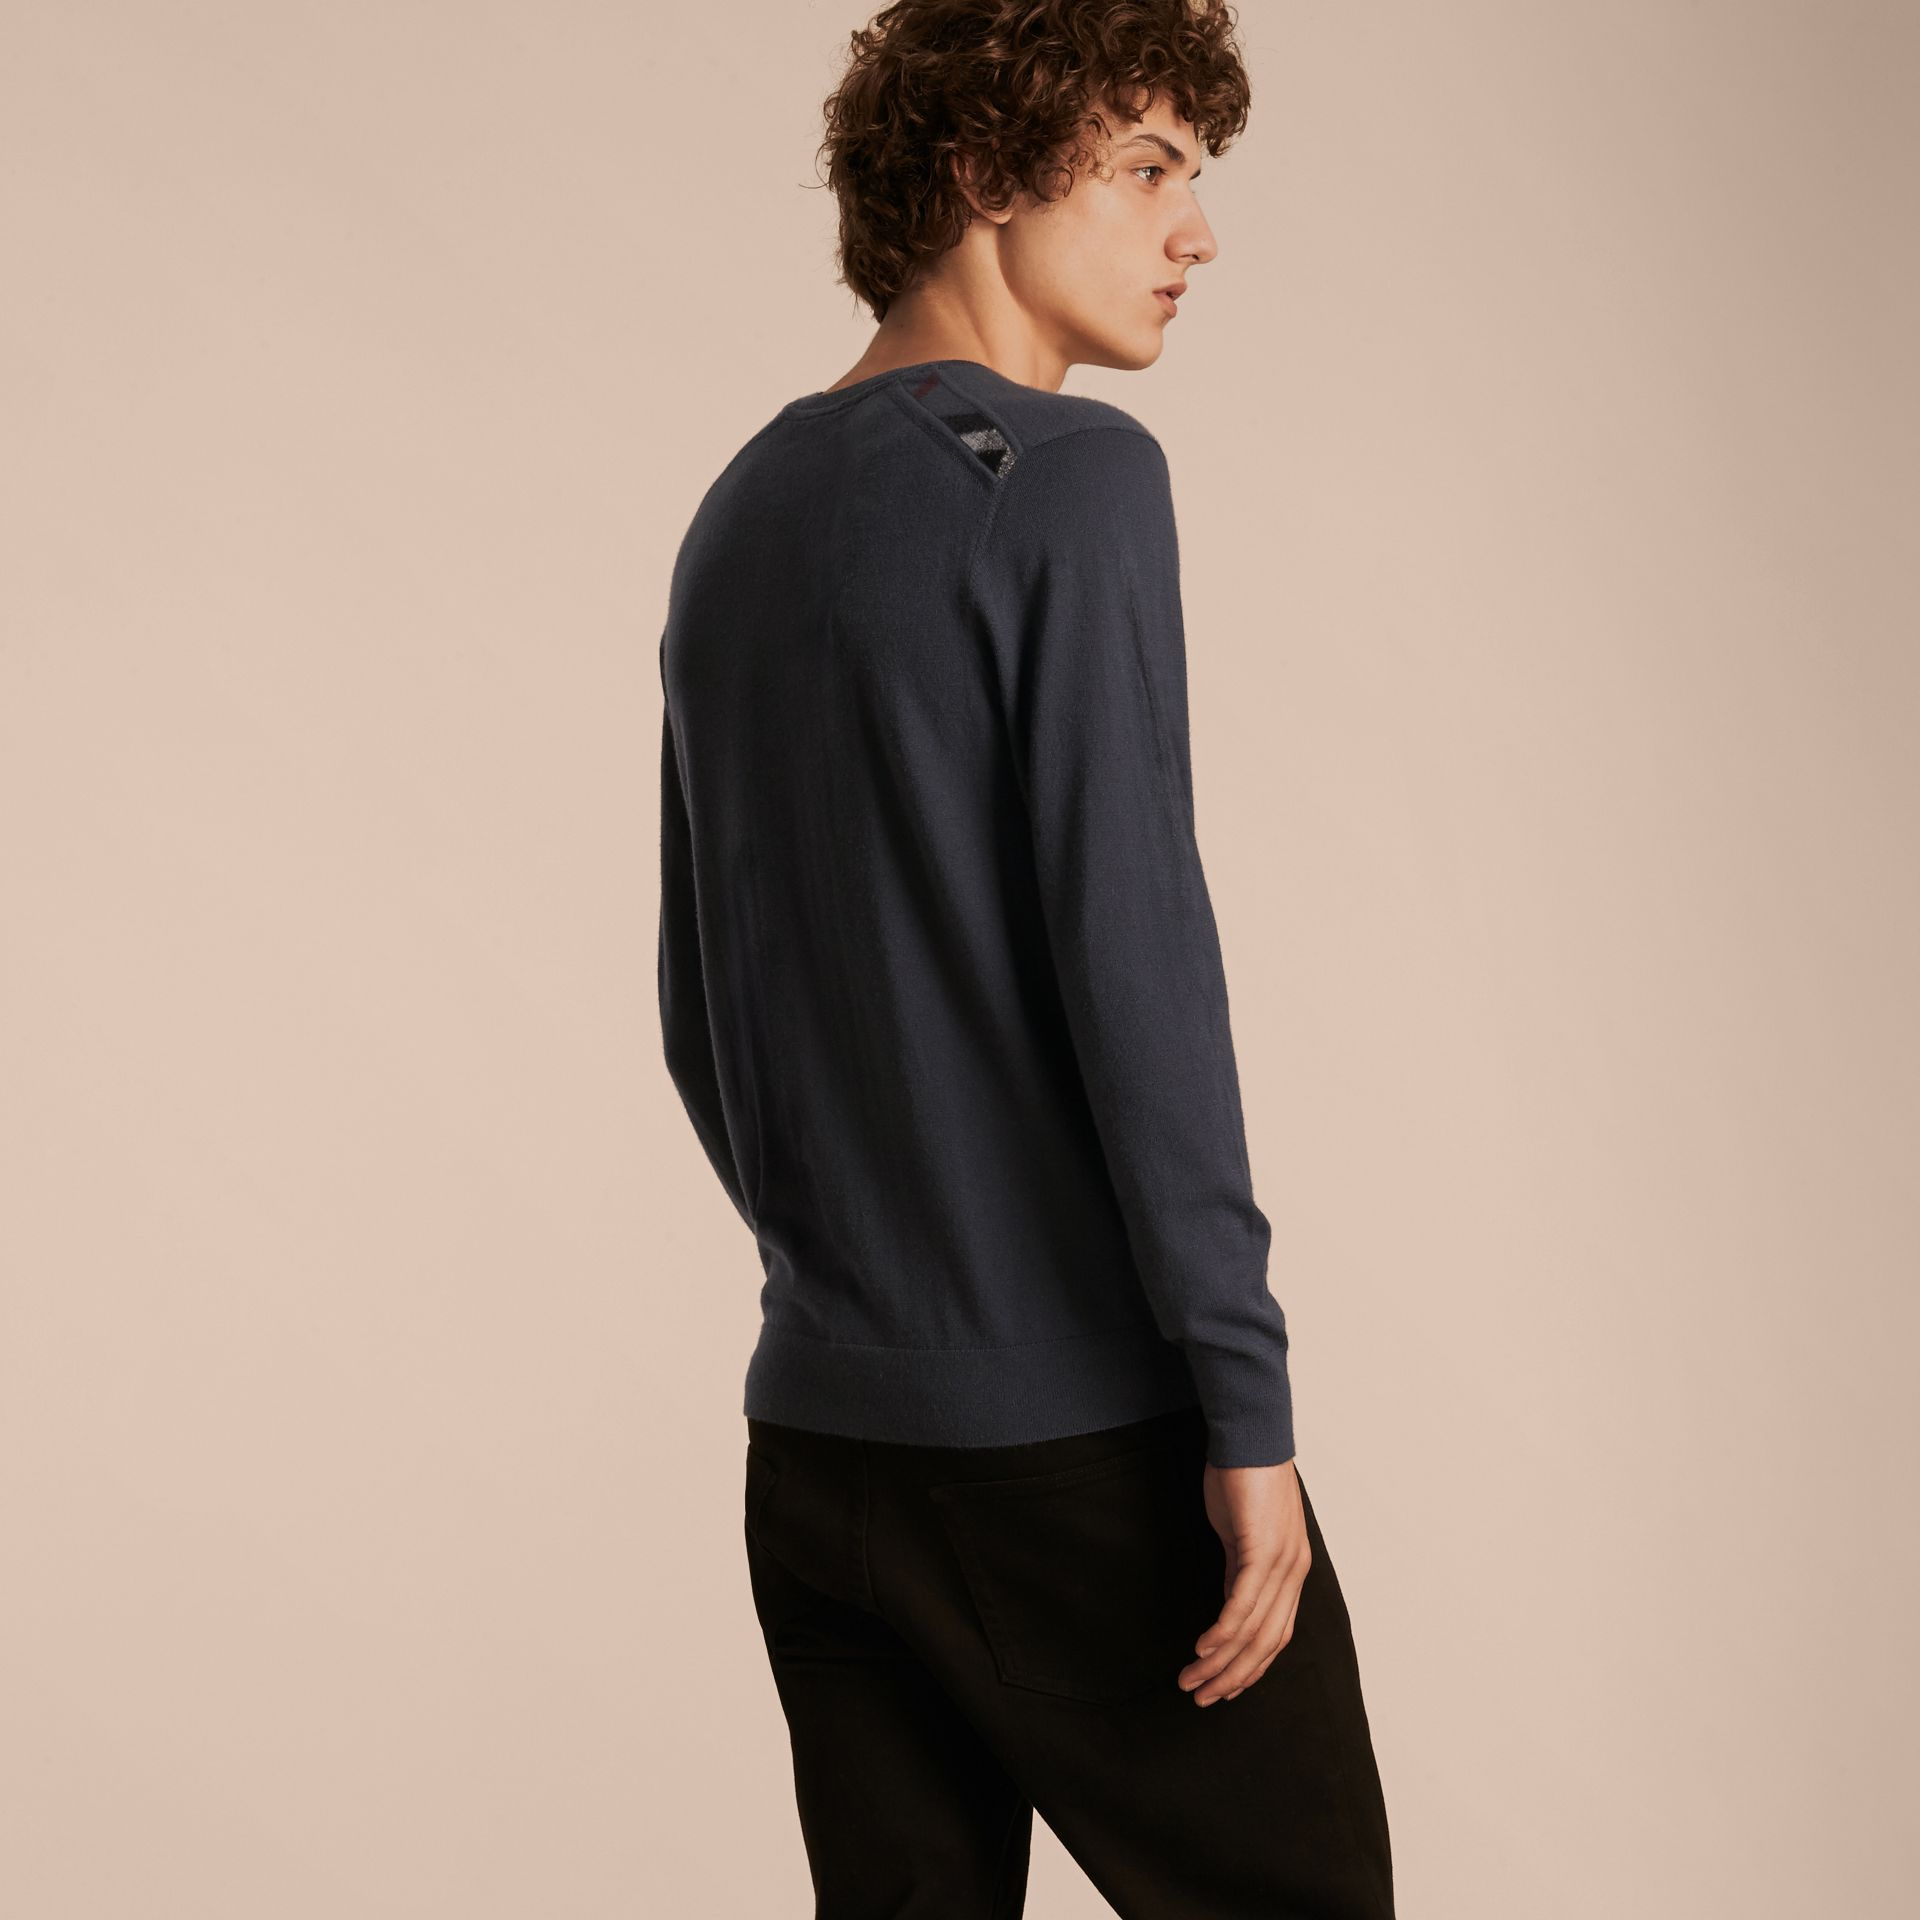 Dark grey melange Lightweight Crew Neck Cashmere Sweater with Check Trim Dark Grey Melange - gallery image 3